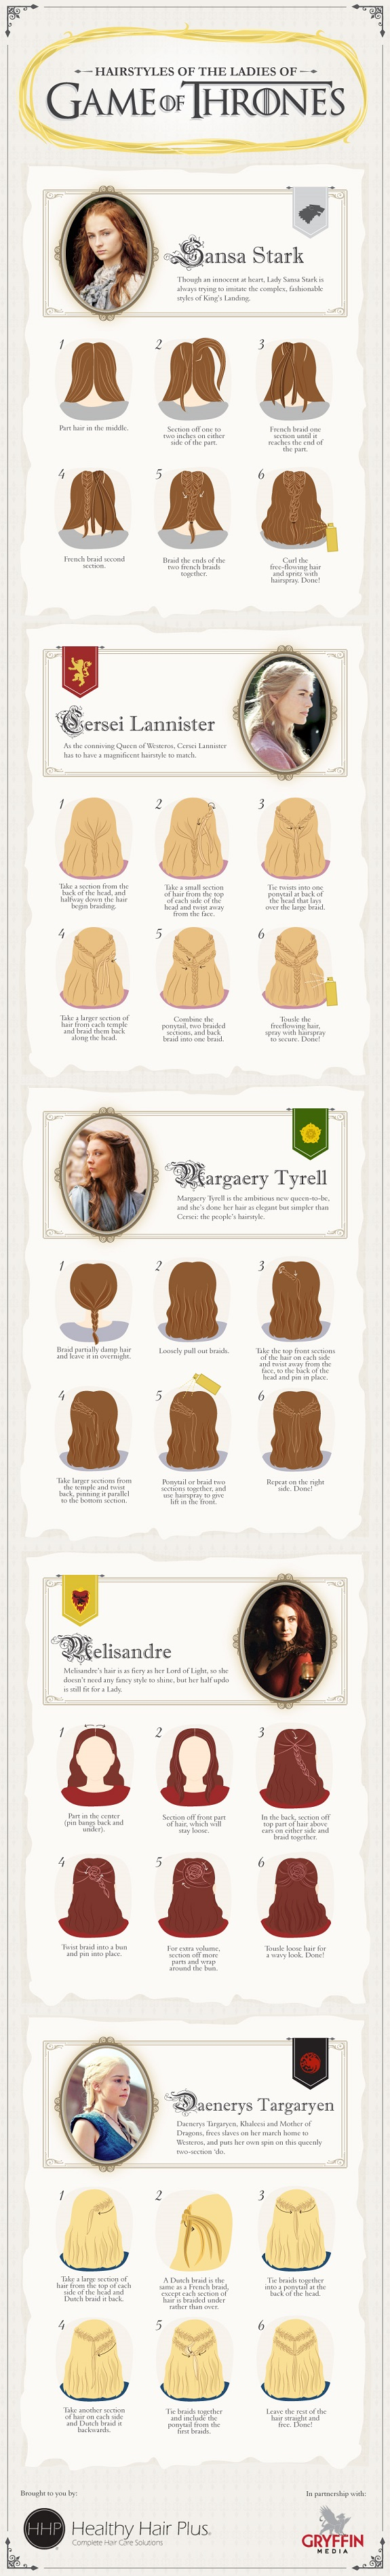 Hairstyles of the ladies of Game of Thrones